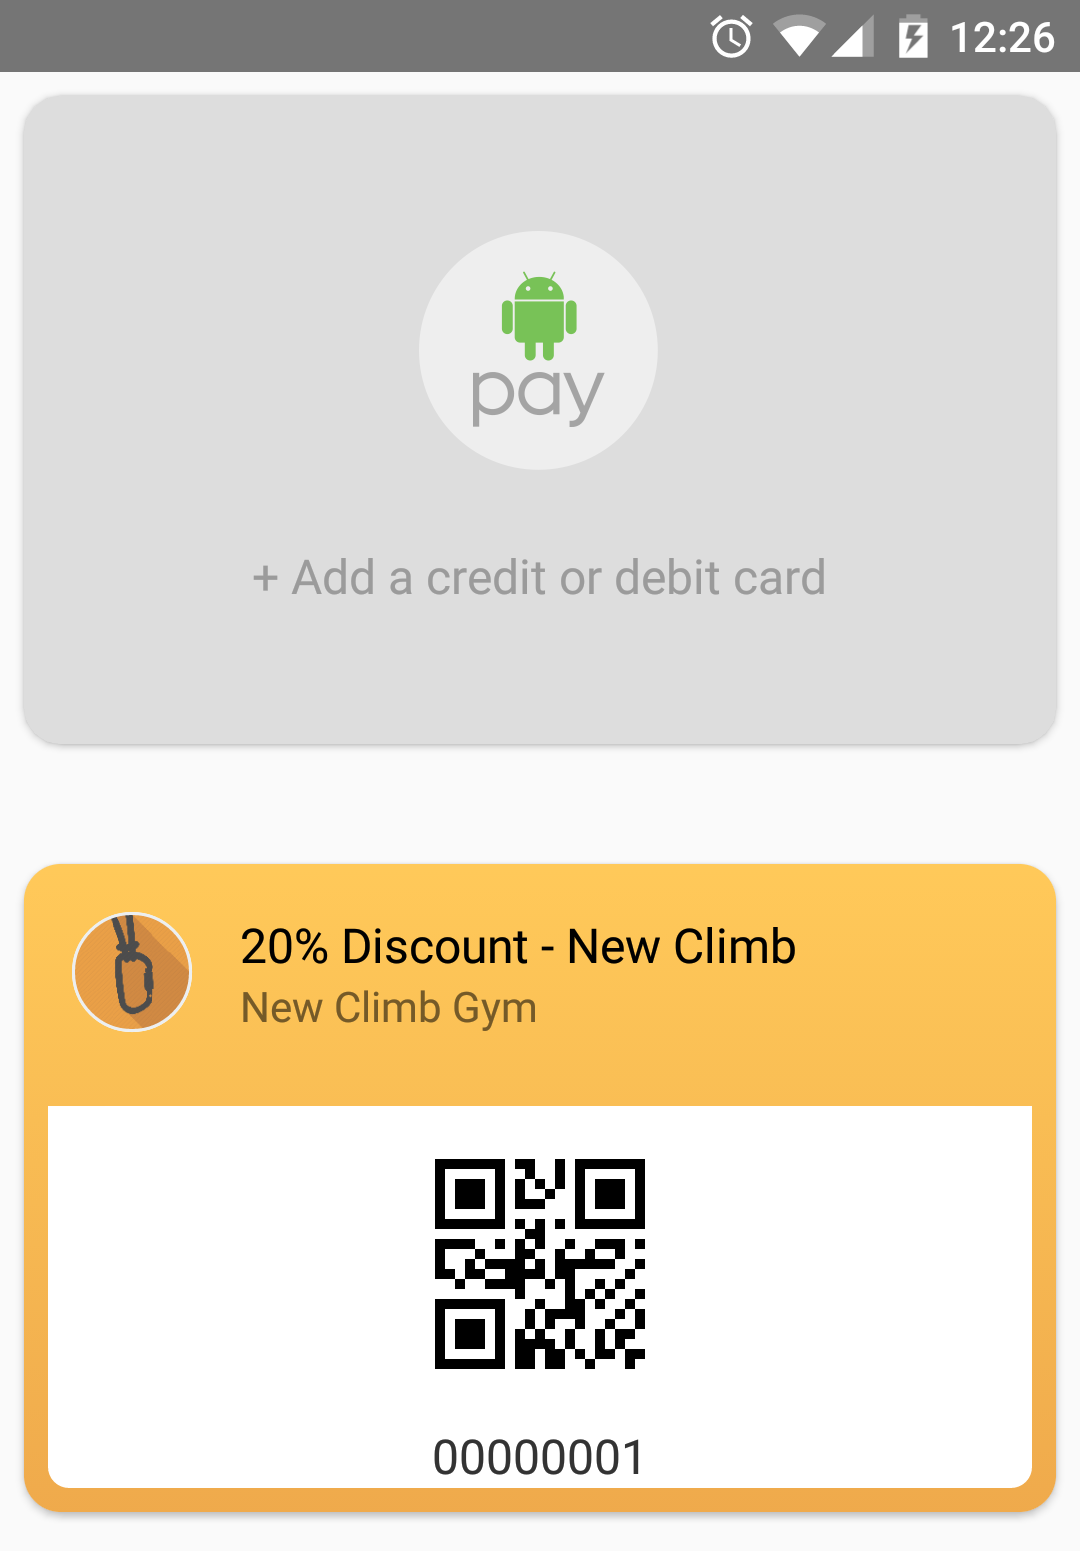 android-pay-pass-listing